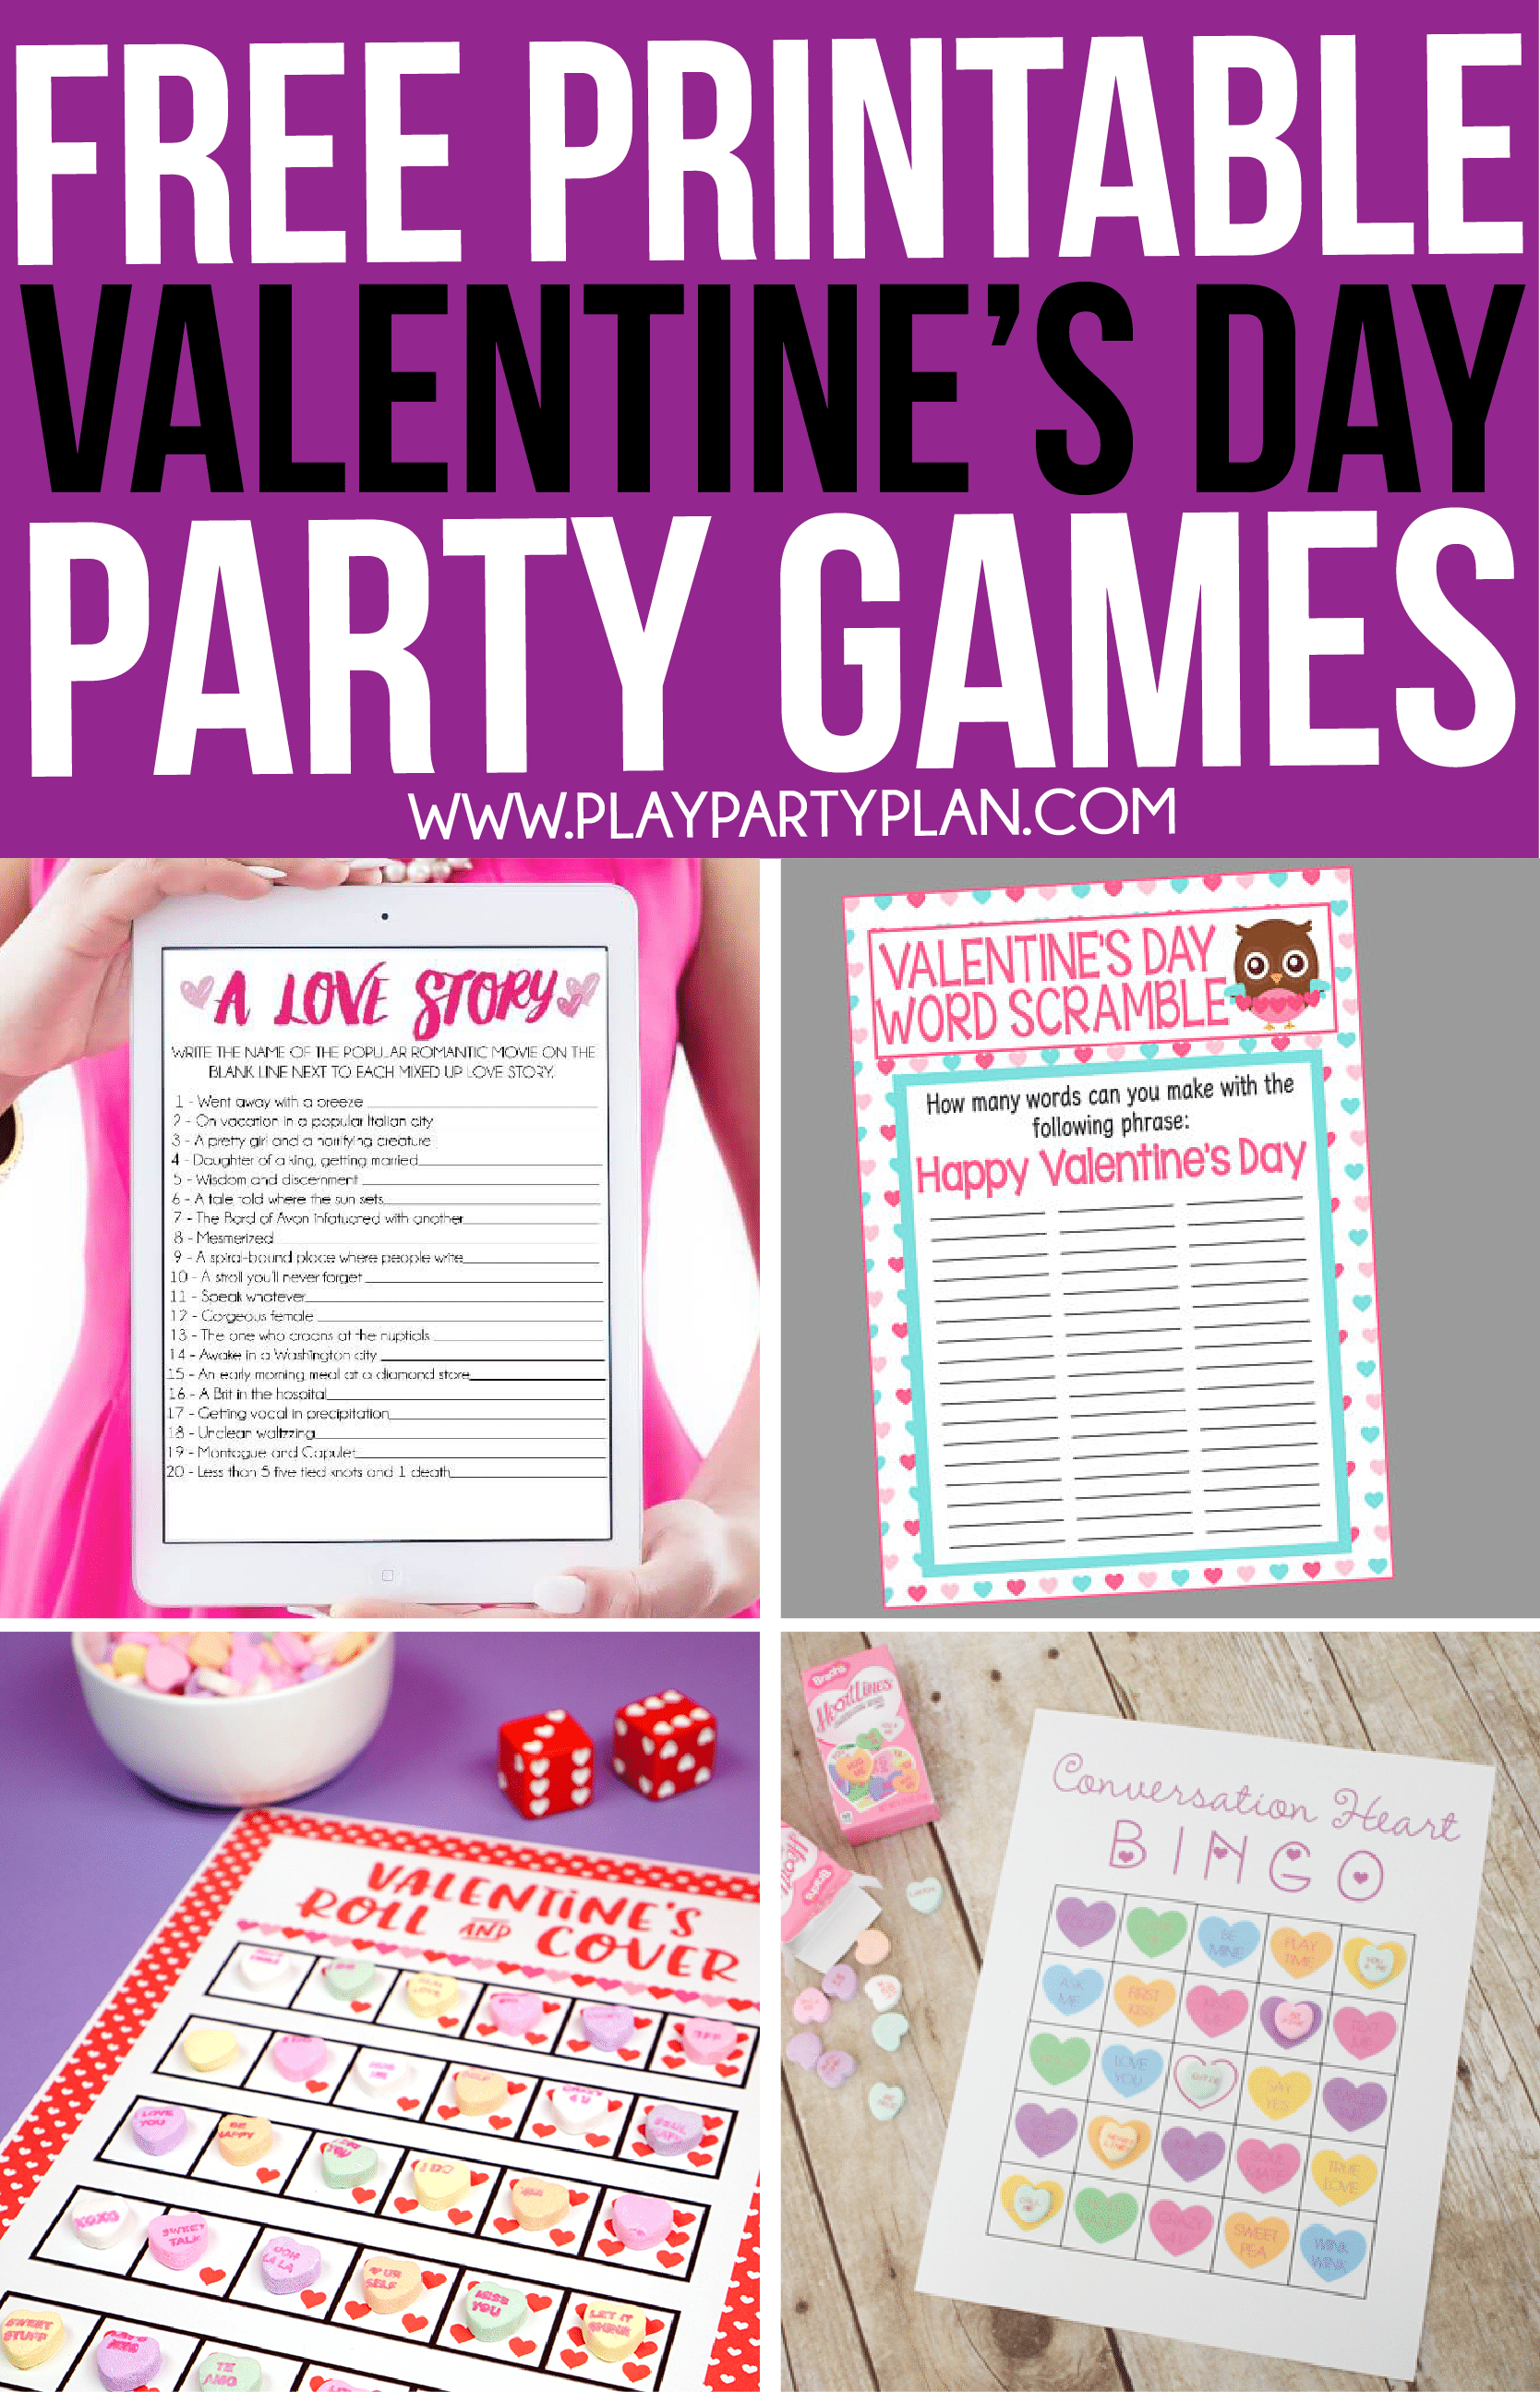 30 Valentine's Day Games Everyone Will Absolutely Love - Play Party Plan - Free Printable Group Games